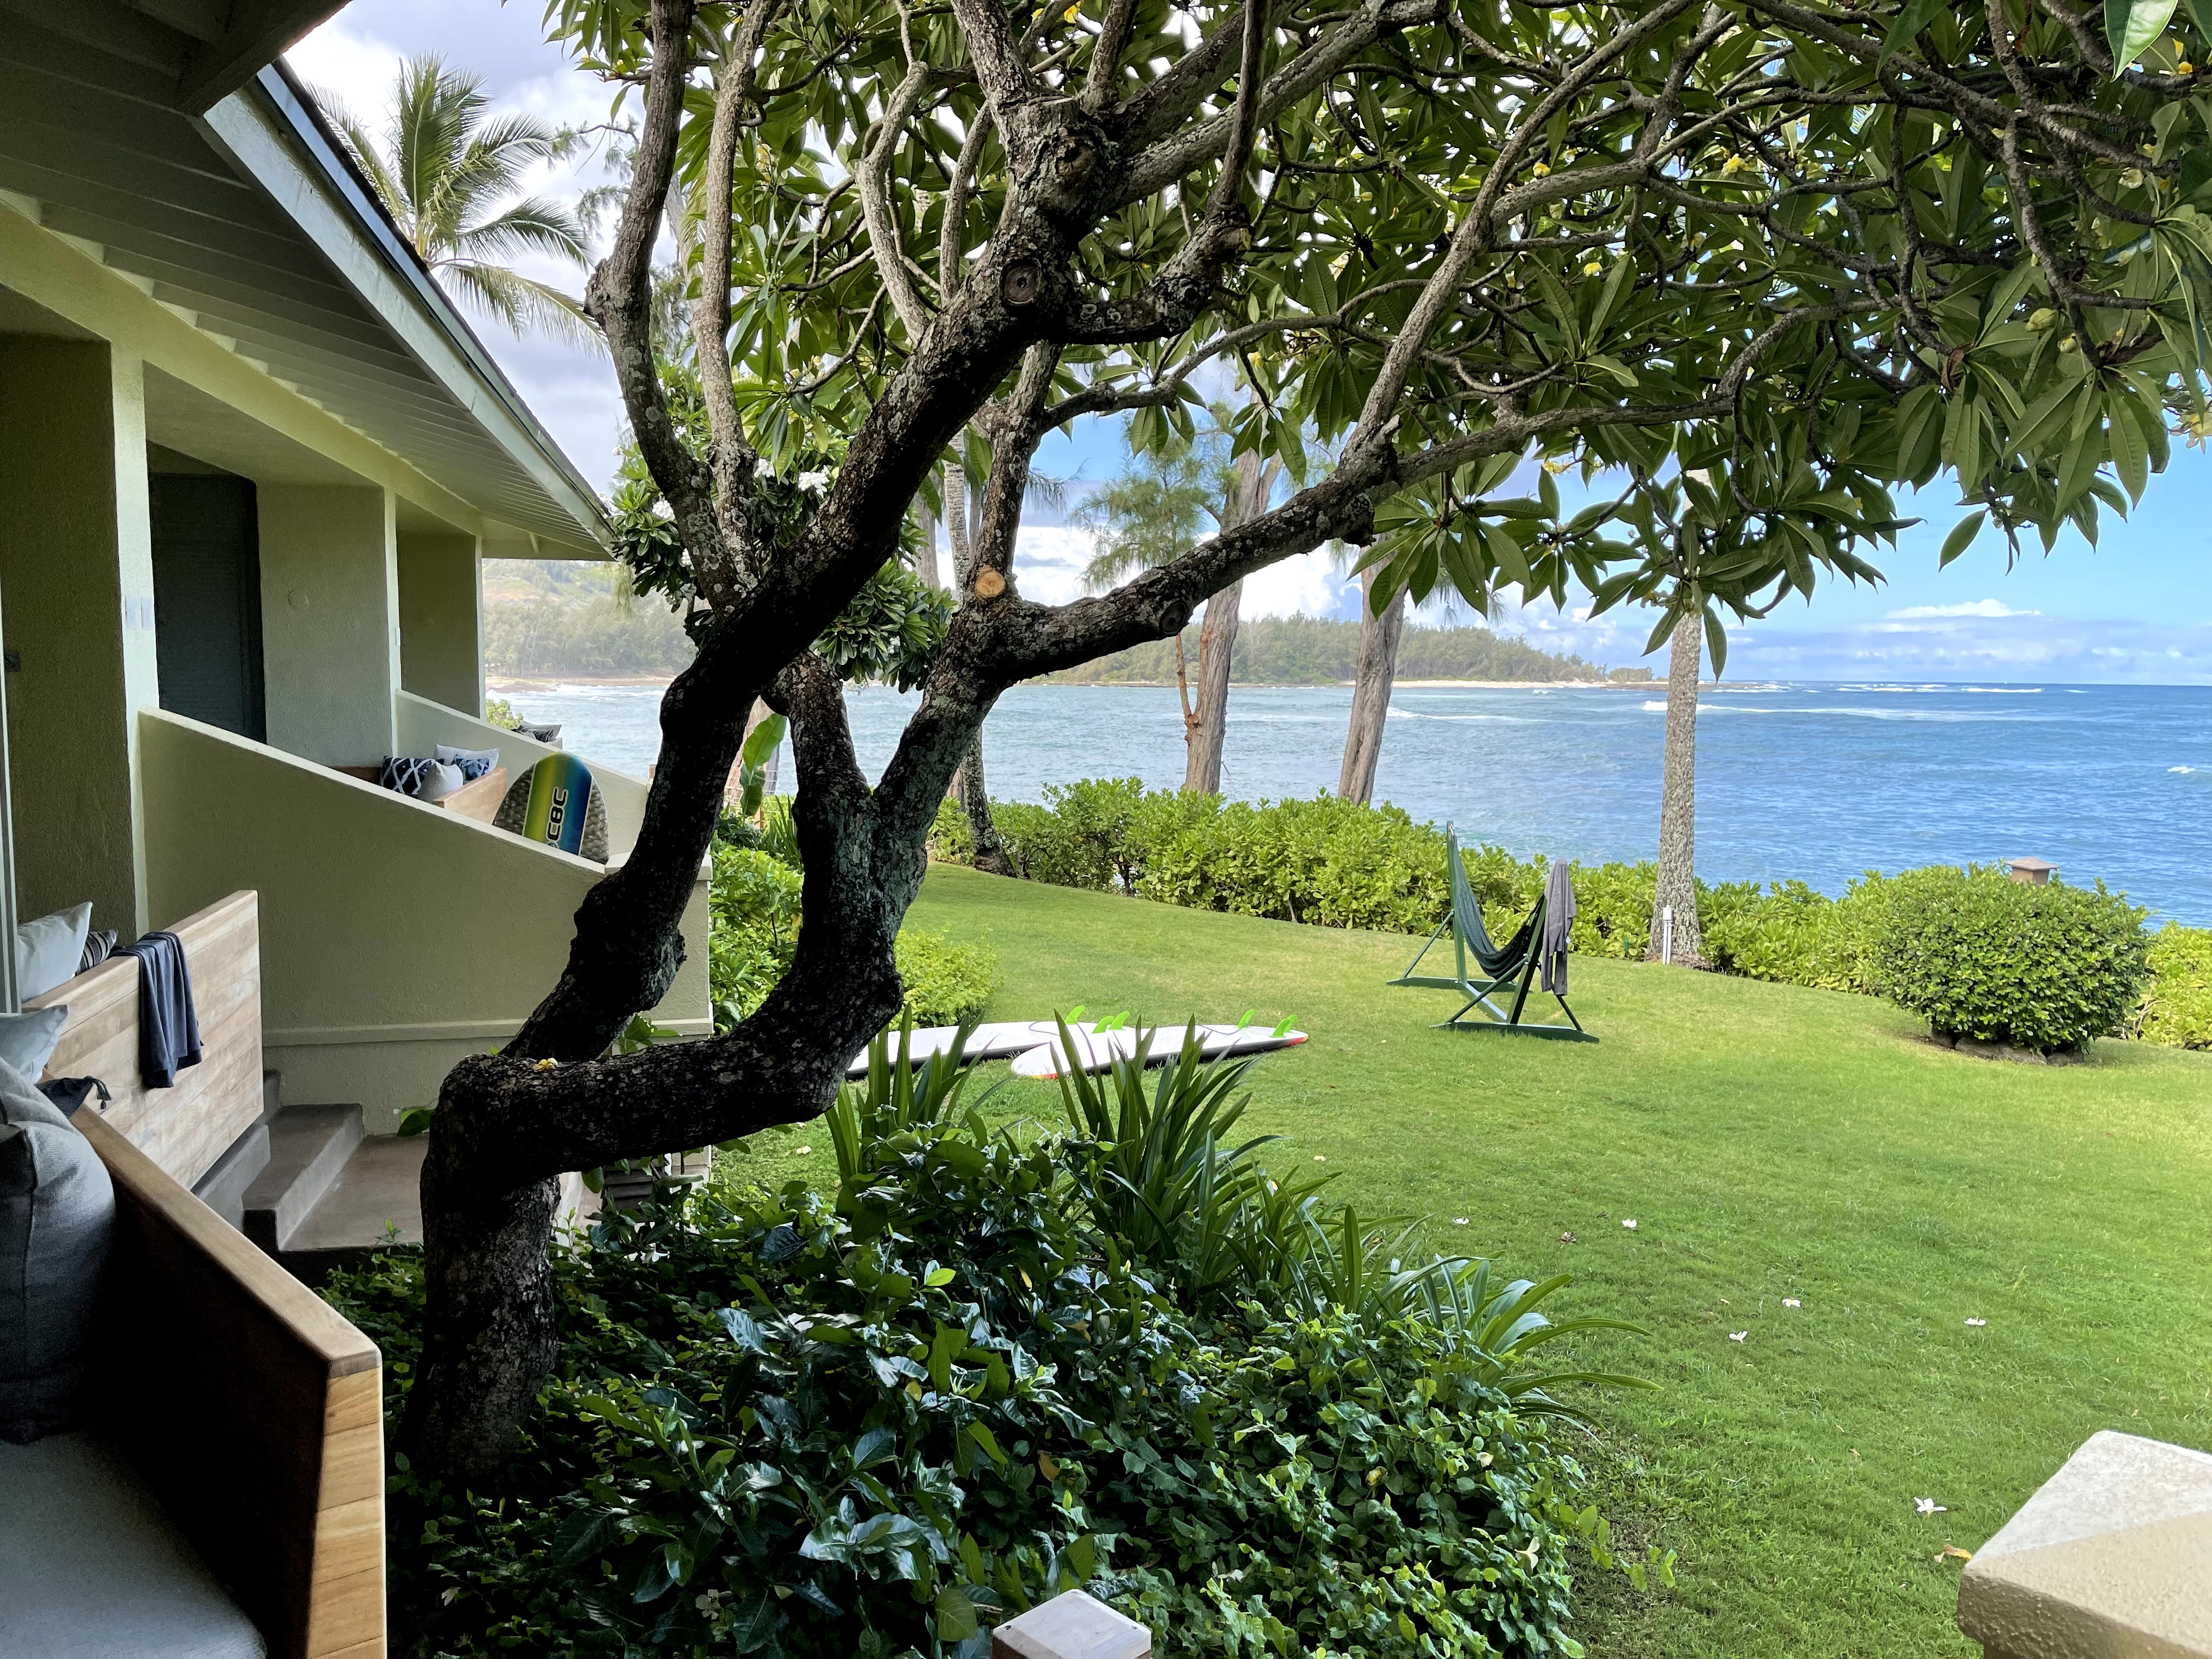 The view from an Ocean Bungalow at the remodeled Turtle Bay Resort in Oahu